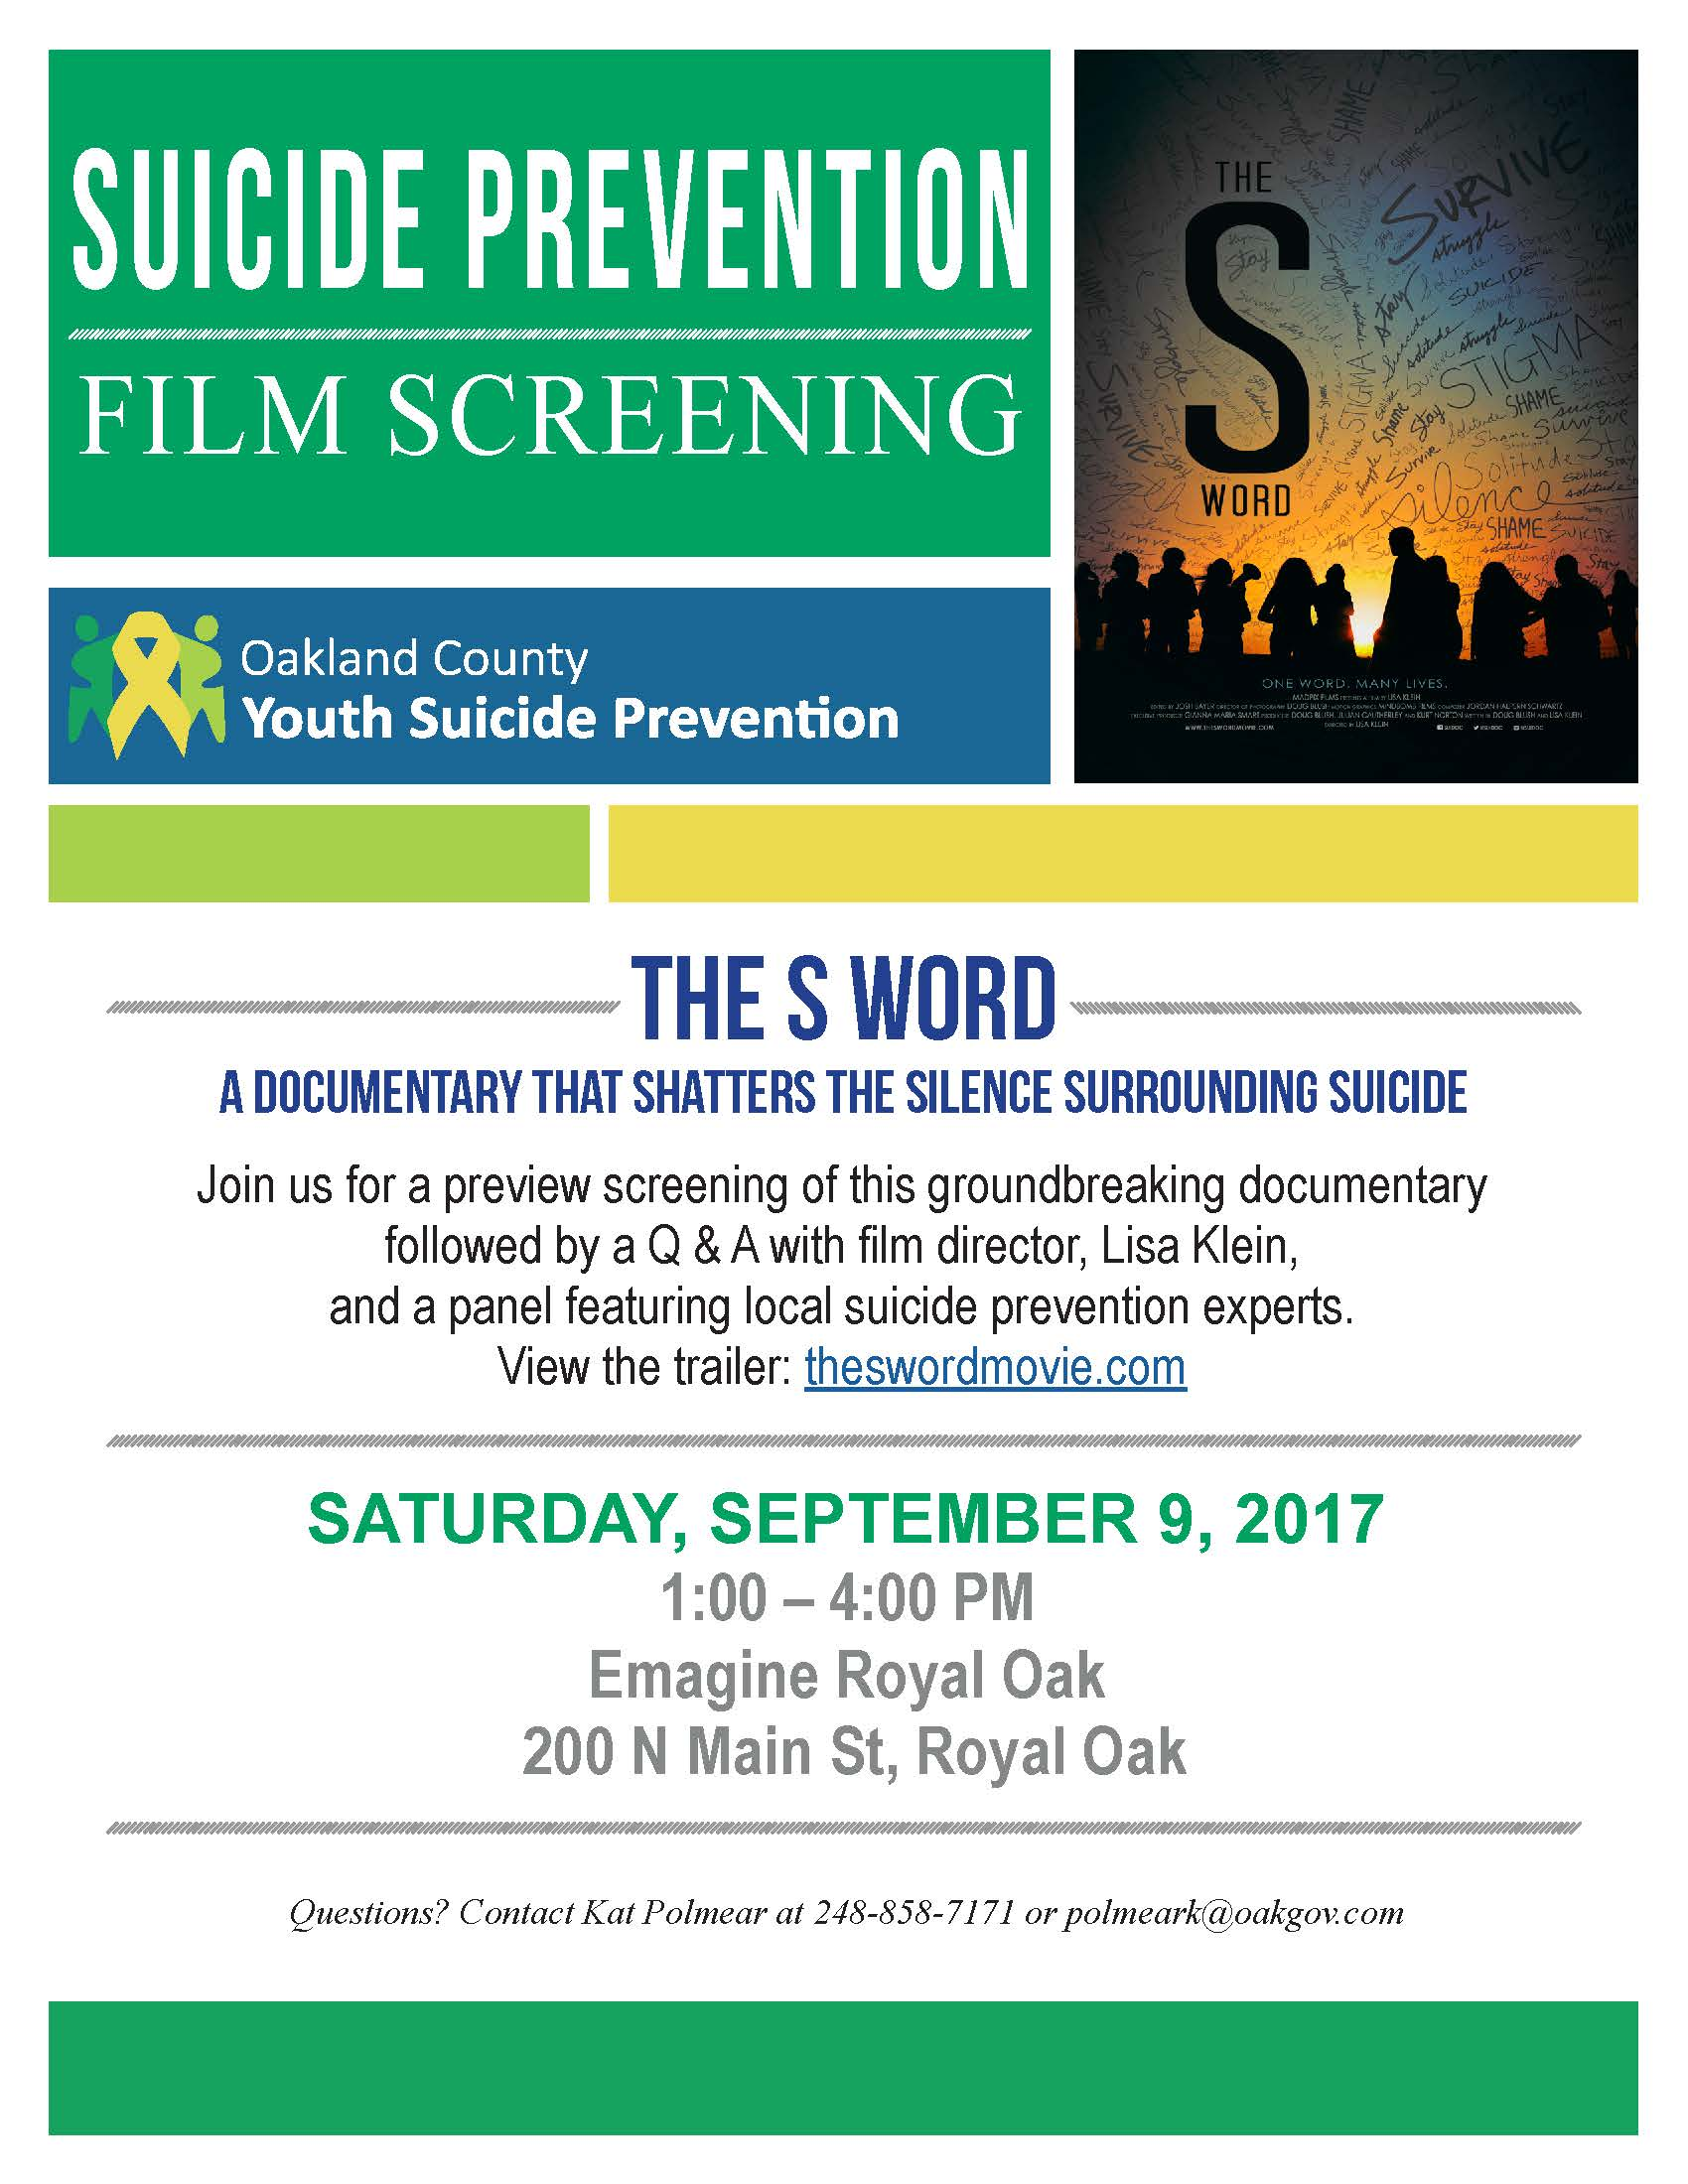 S Word Screening Flyer.jpg